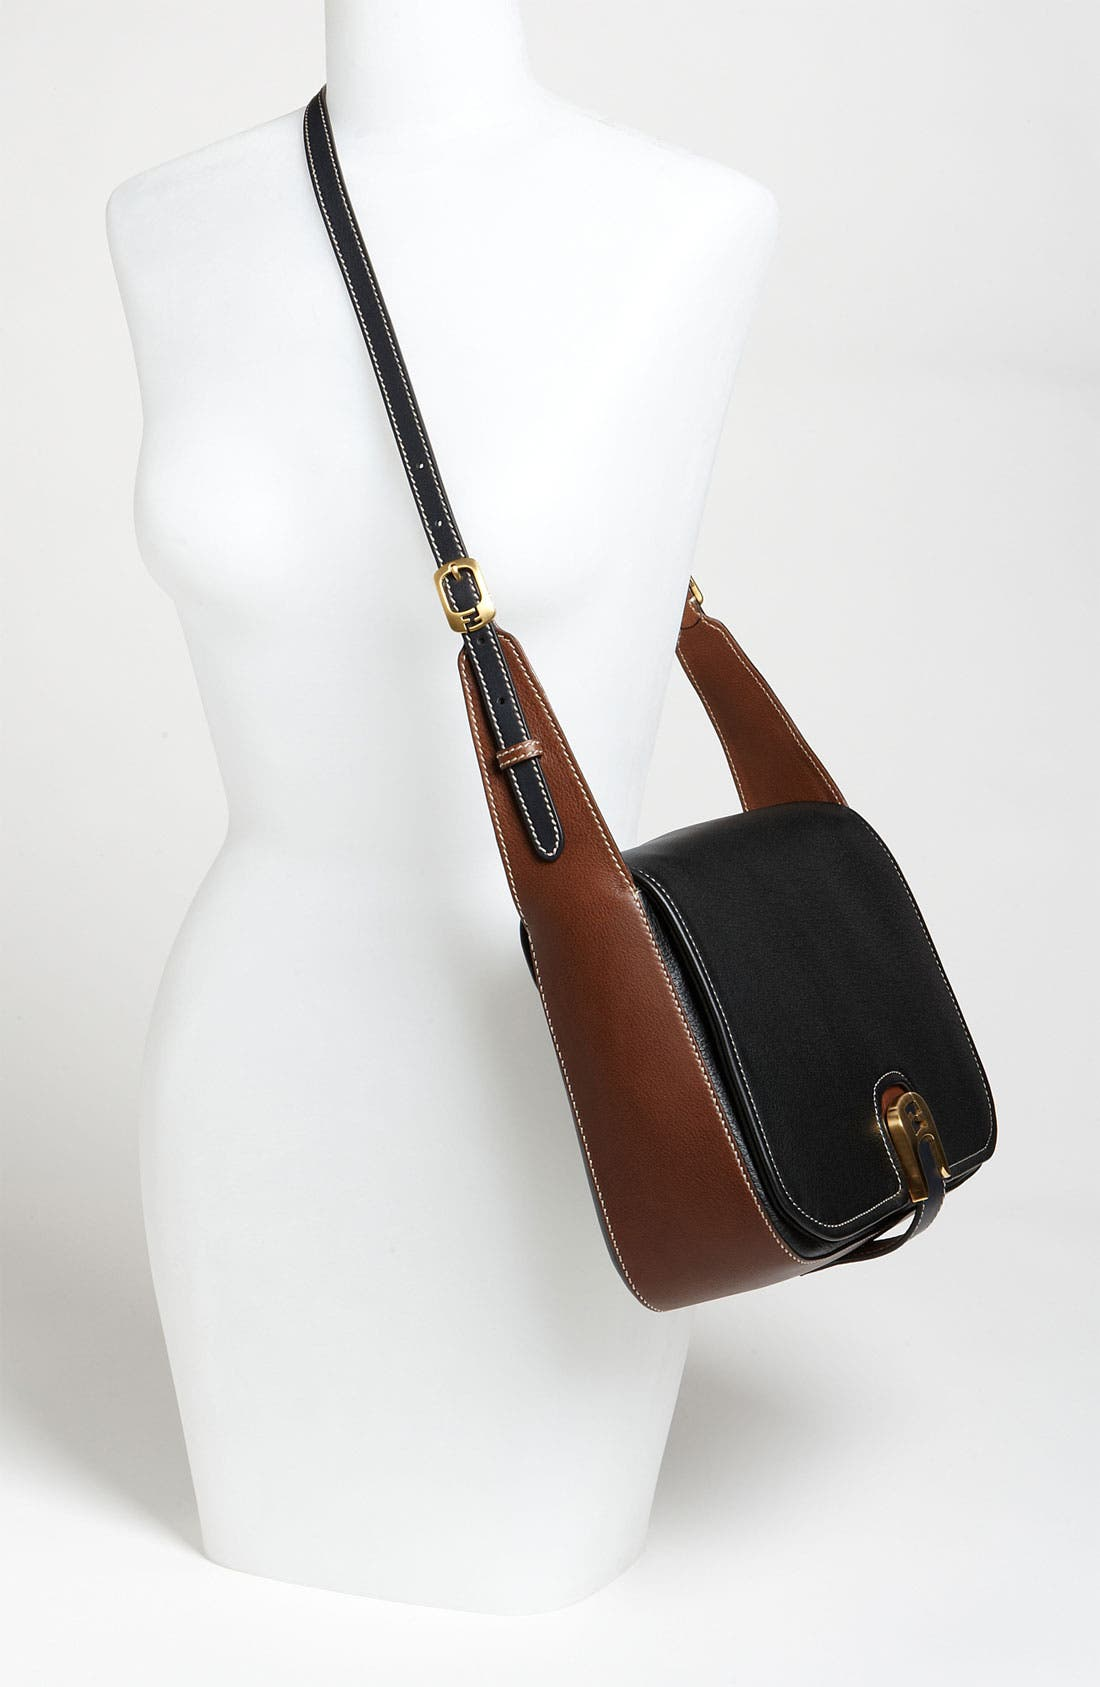 'Chameleon' Leather Shoulder Bag,                             Alternate thumbnail 2, color,                             Black/ Brown